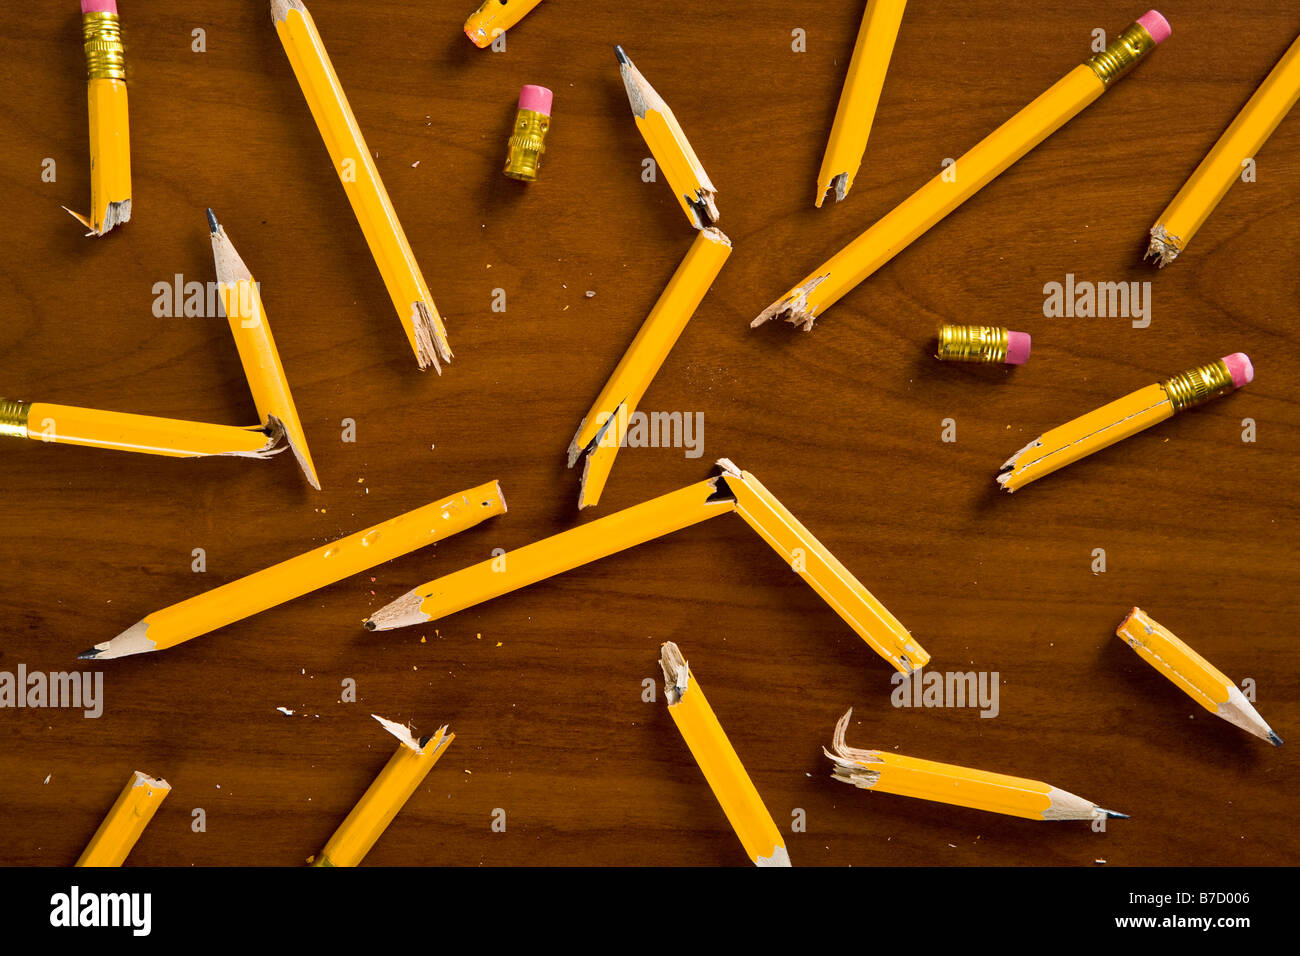 A desk littered with broken pencils - Stock Image